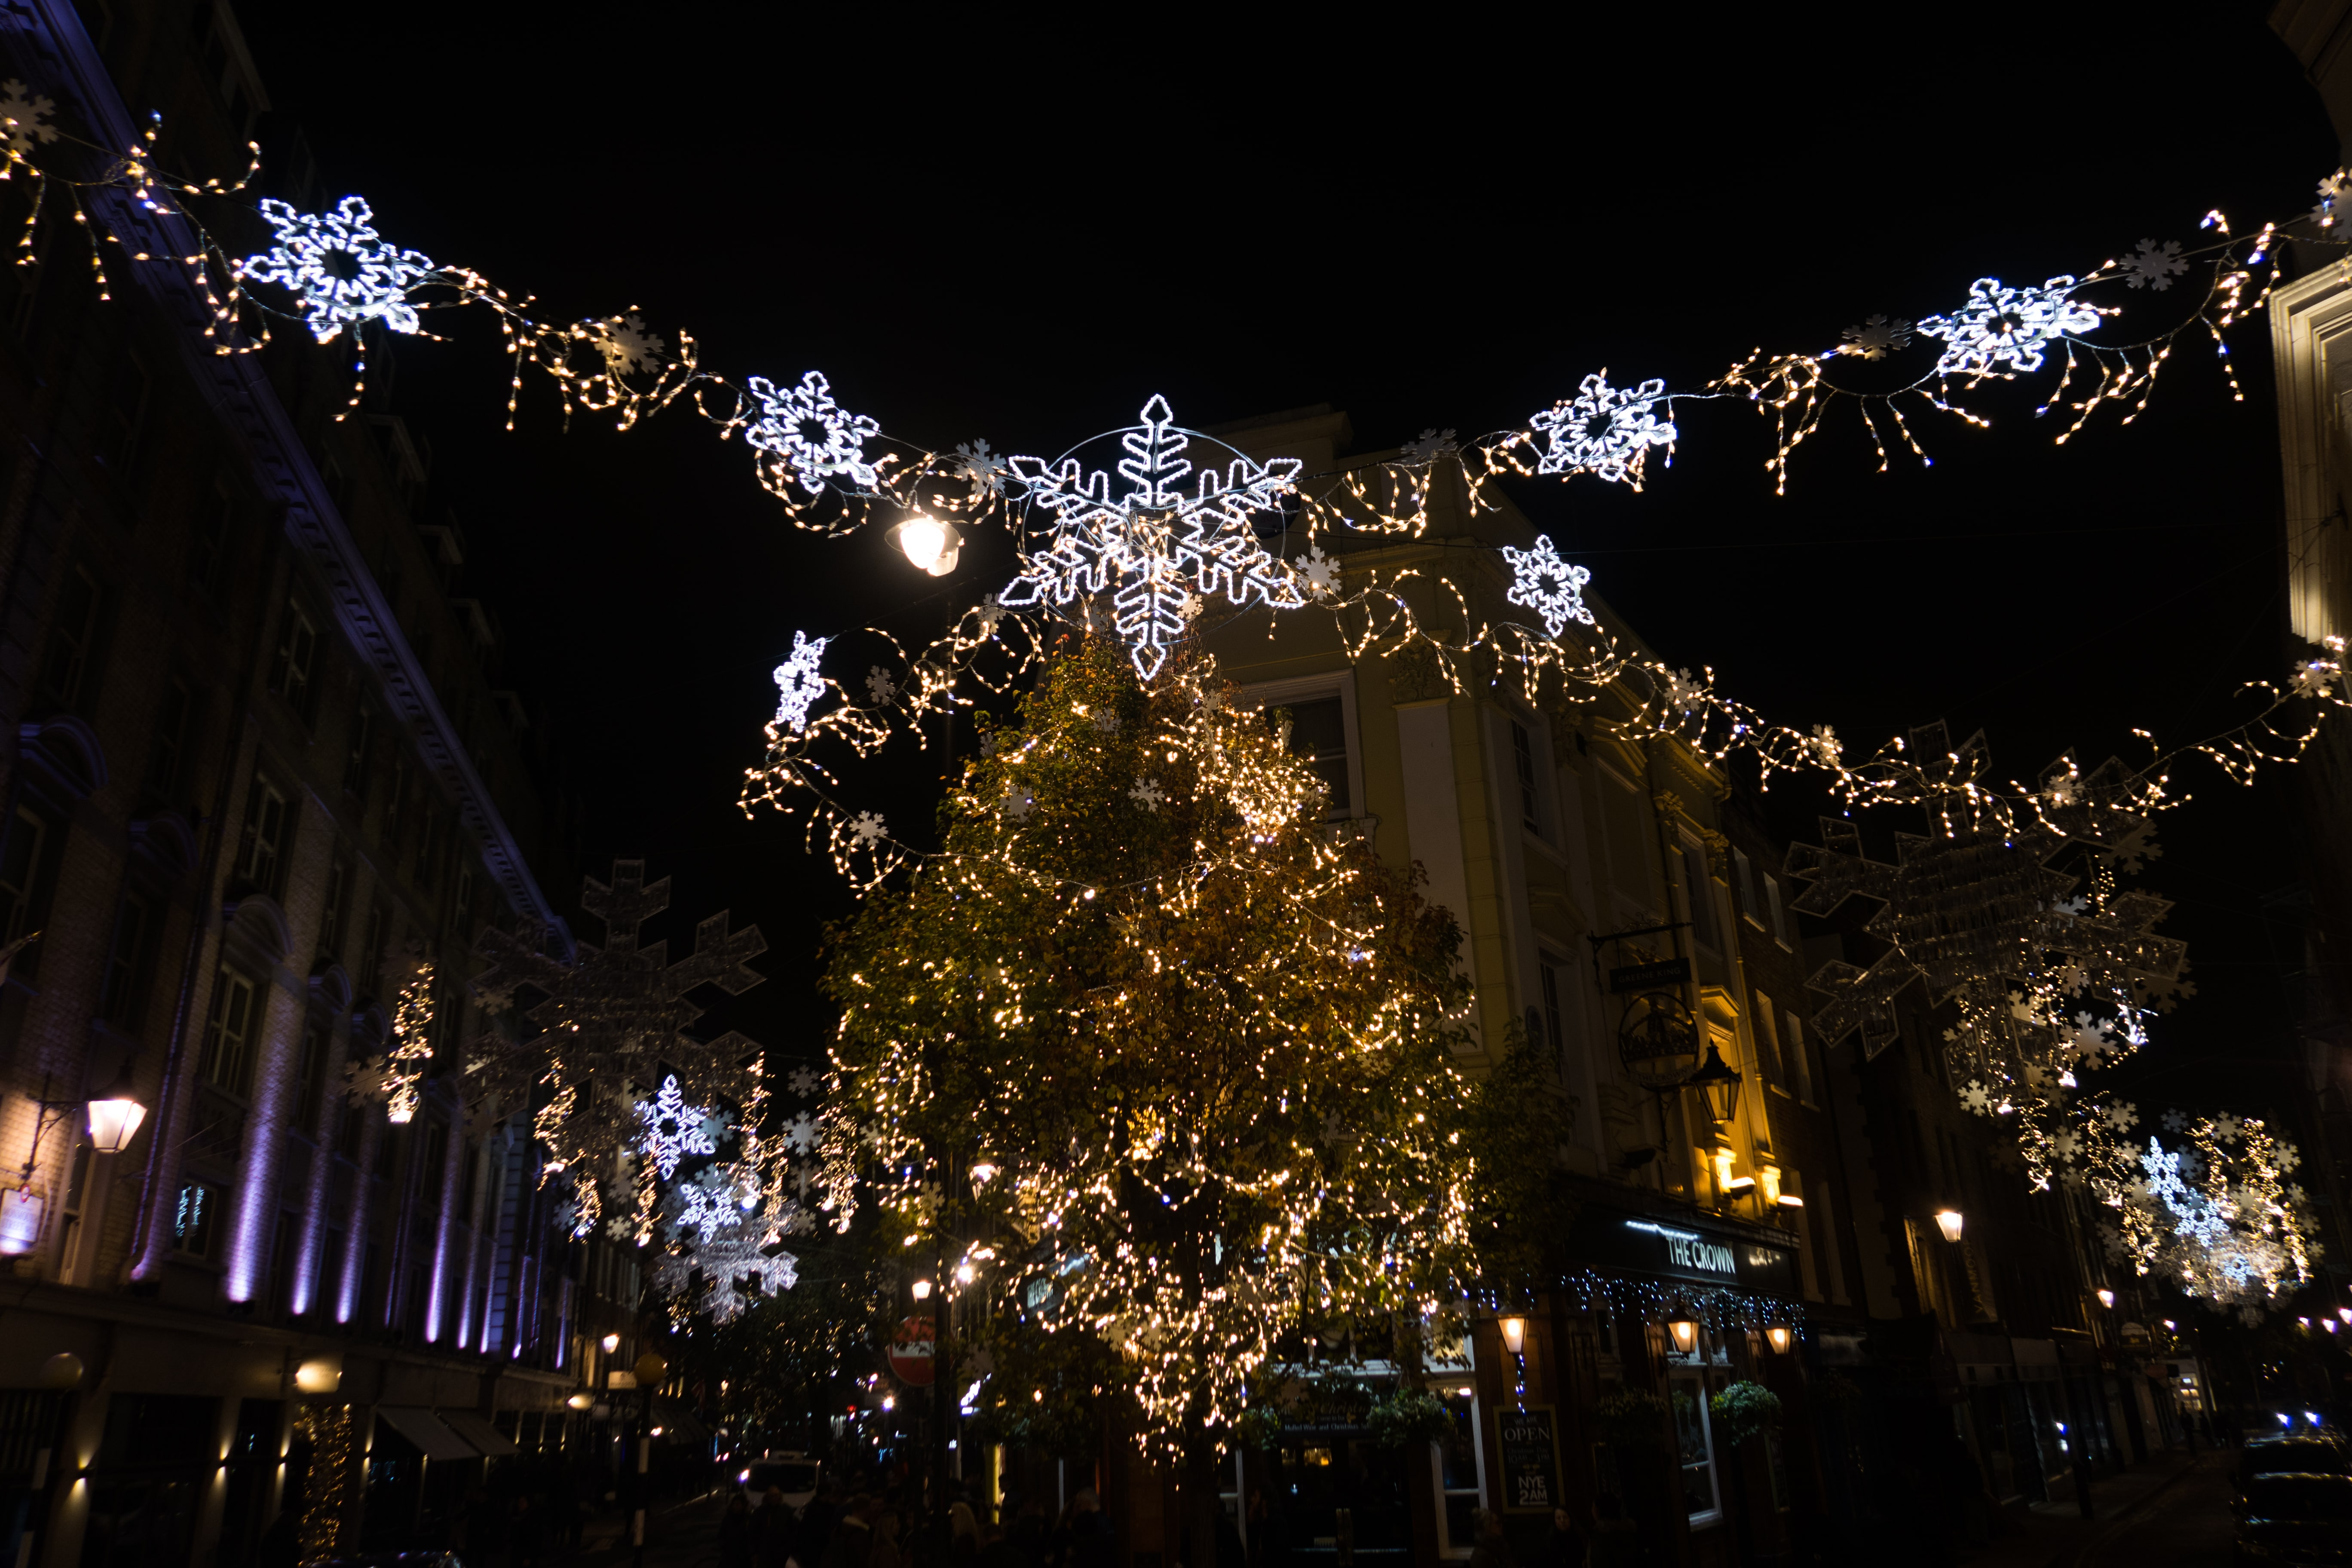 Seven dials lights during Christmas Season at Covent Garden-2